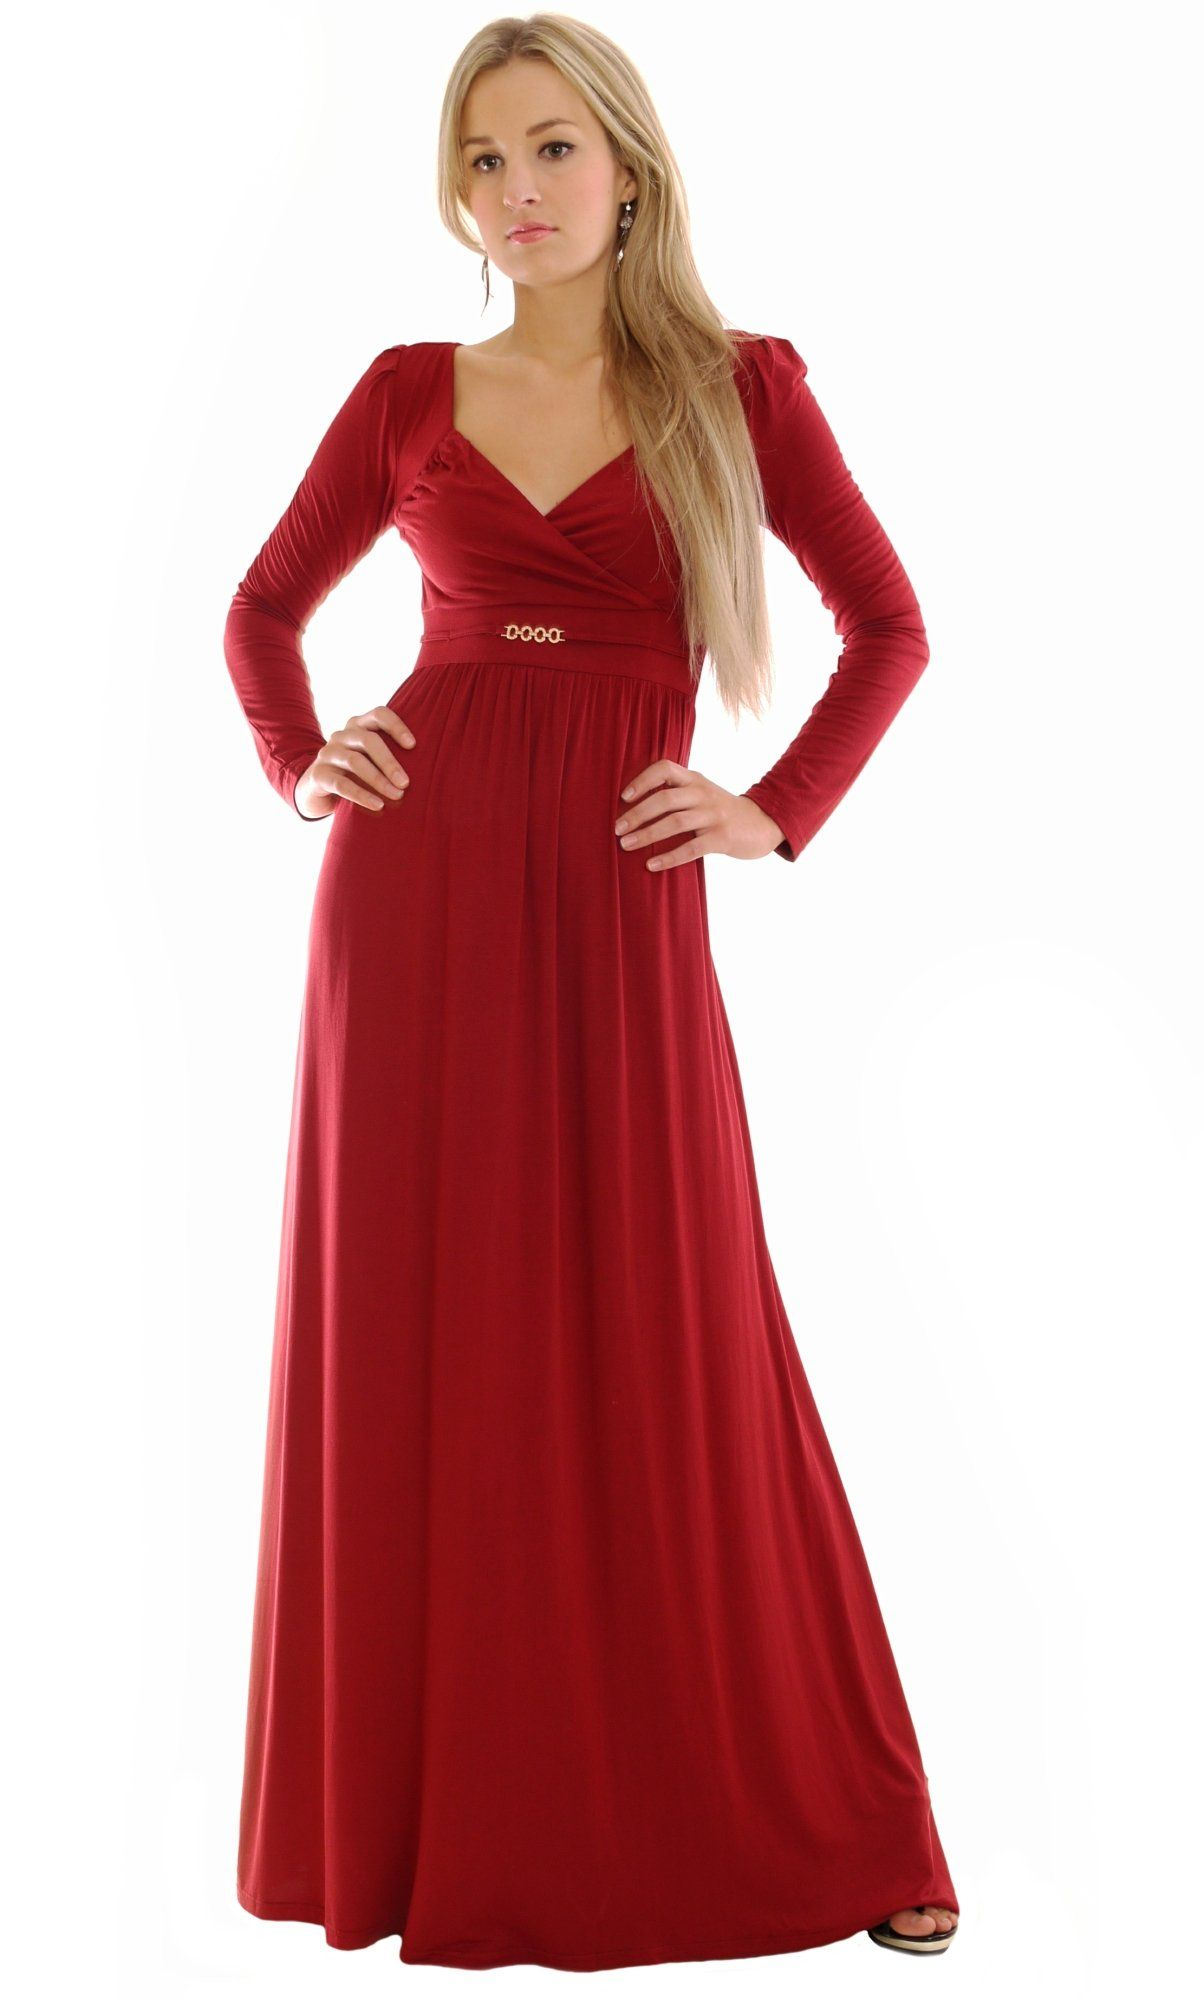 Long Sleeve Maxi Dress Burgundy Empire Style by MontyQ 150cm Overall ...